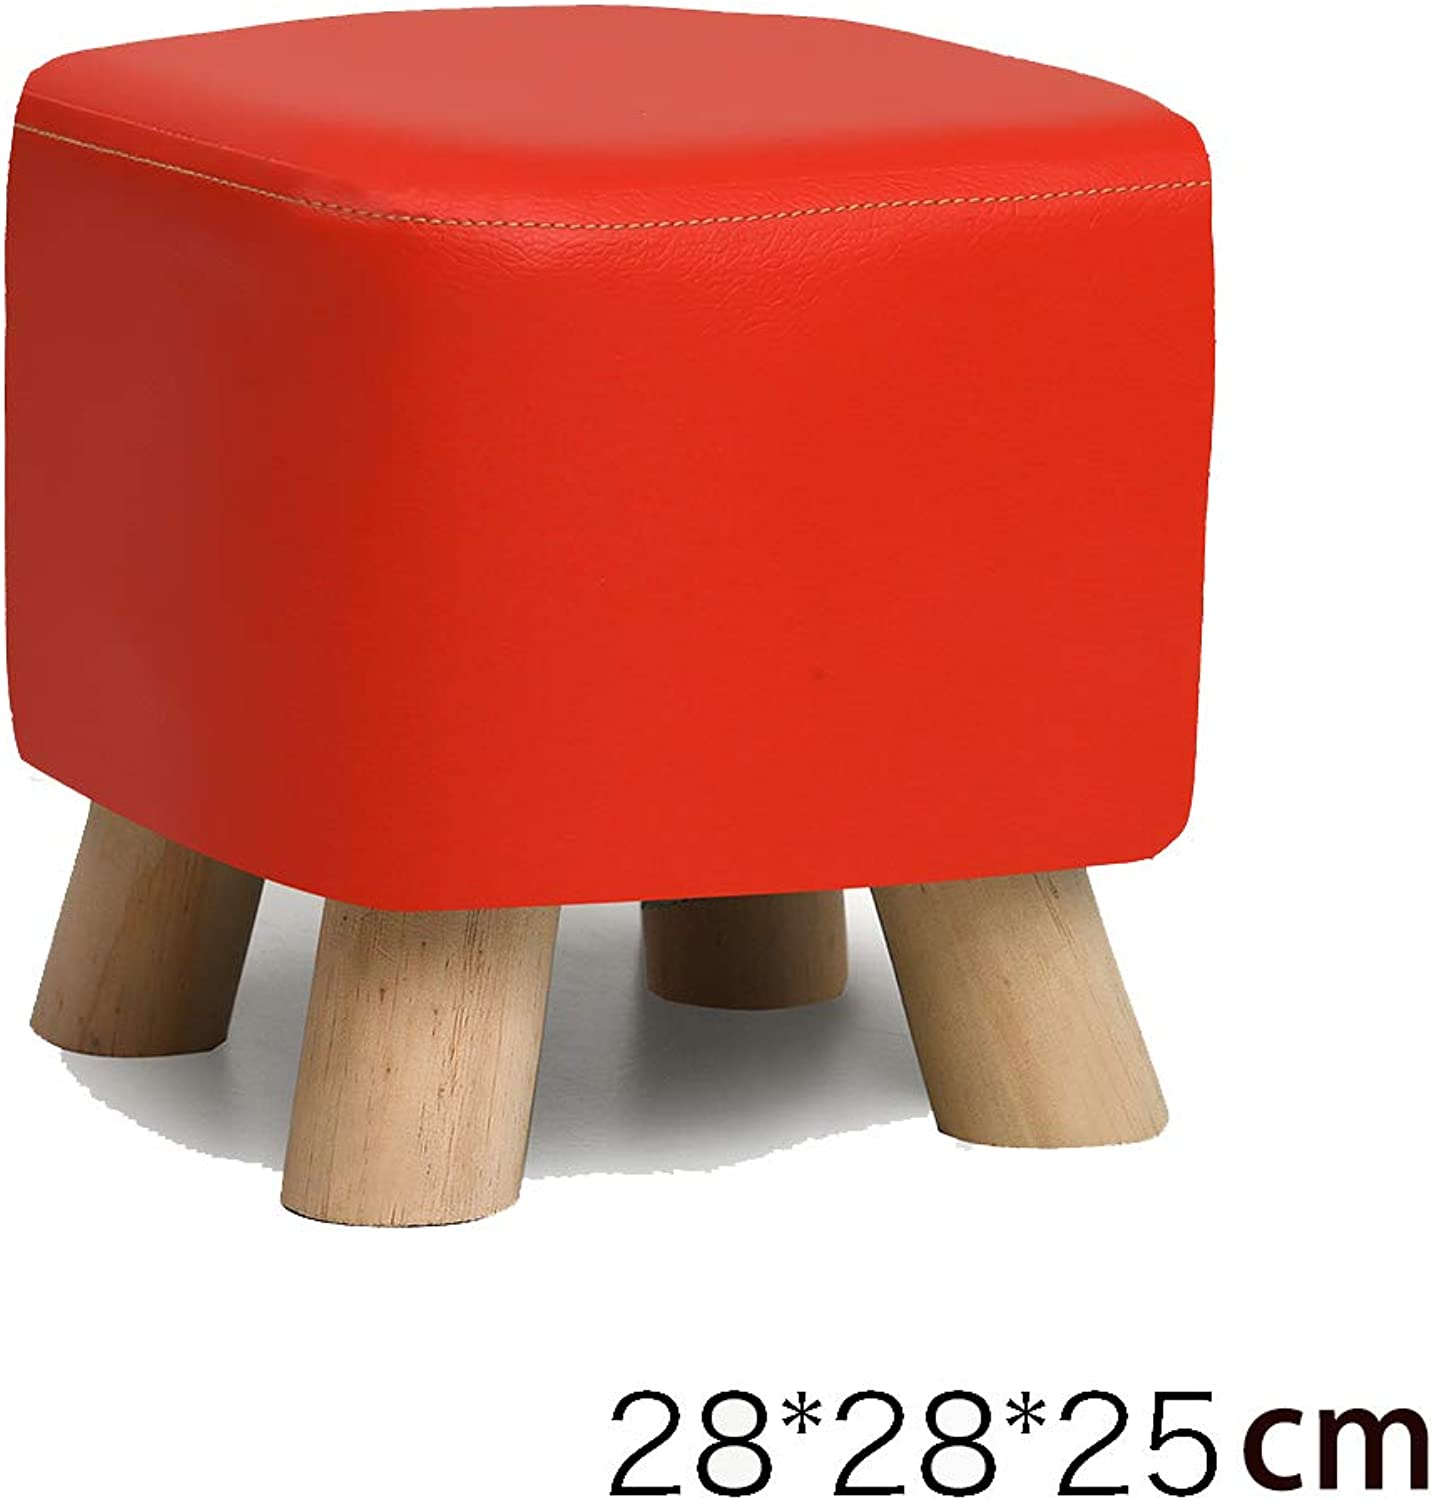 Square Stool, Padded Footstool, Home Pu Cover, 4 Legs and Detachable Linen Cover   28  28  25Cm   Pine (Red)